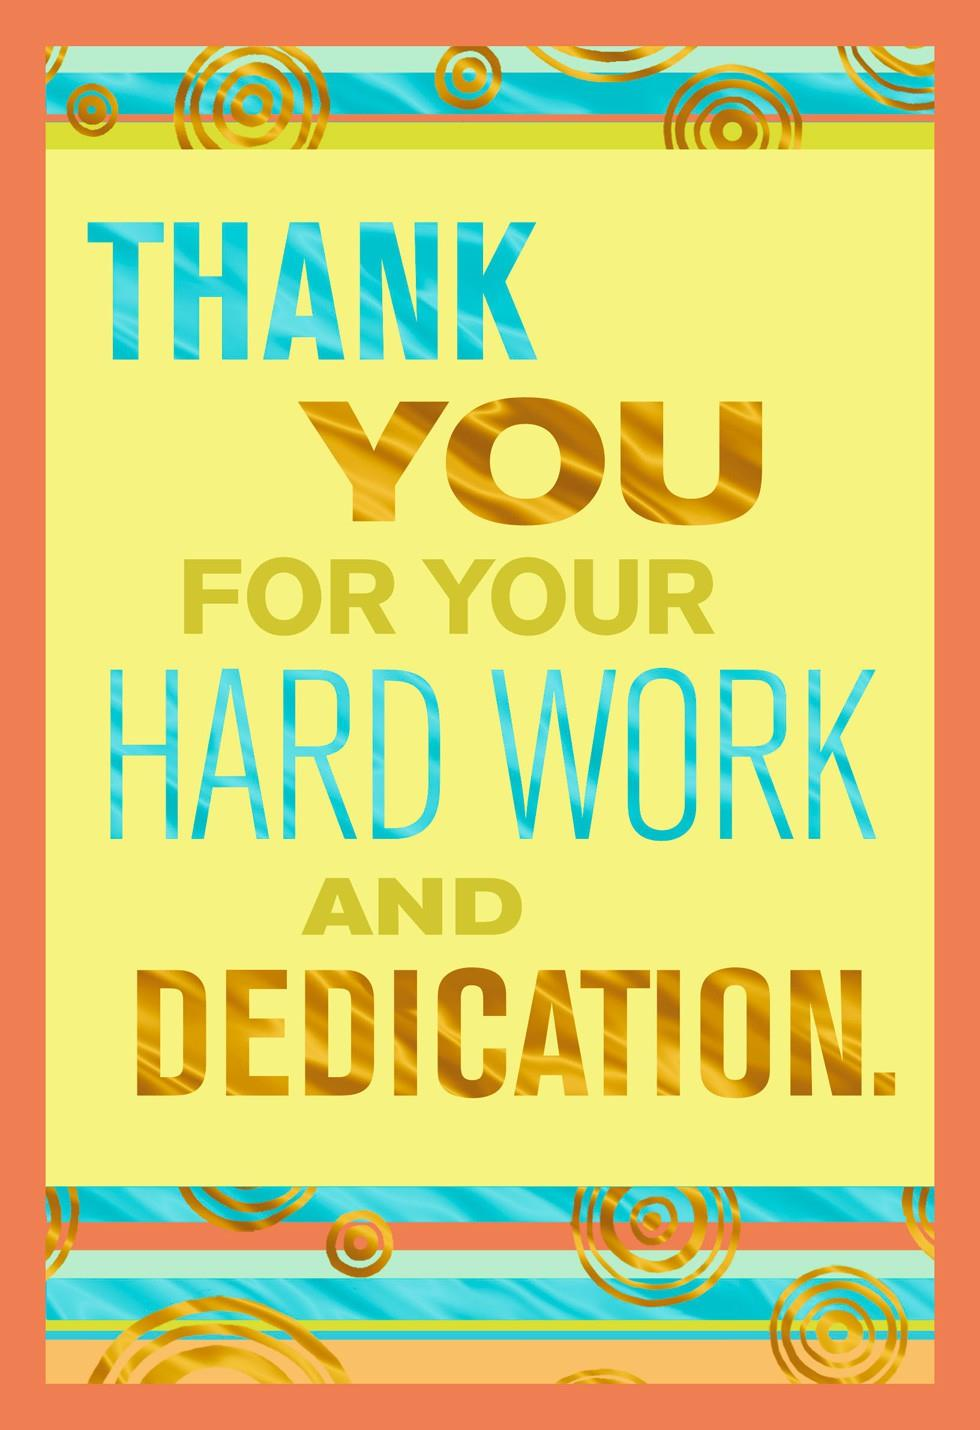 Thank You Quotes For Hard Work And Dedication: Thank You Administrative Professionals Day Card